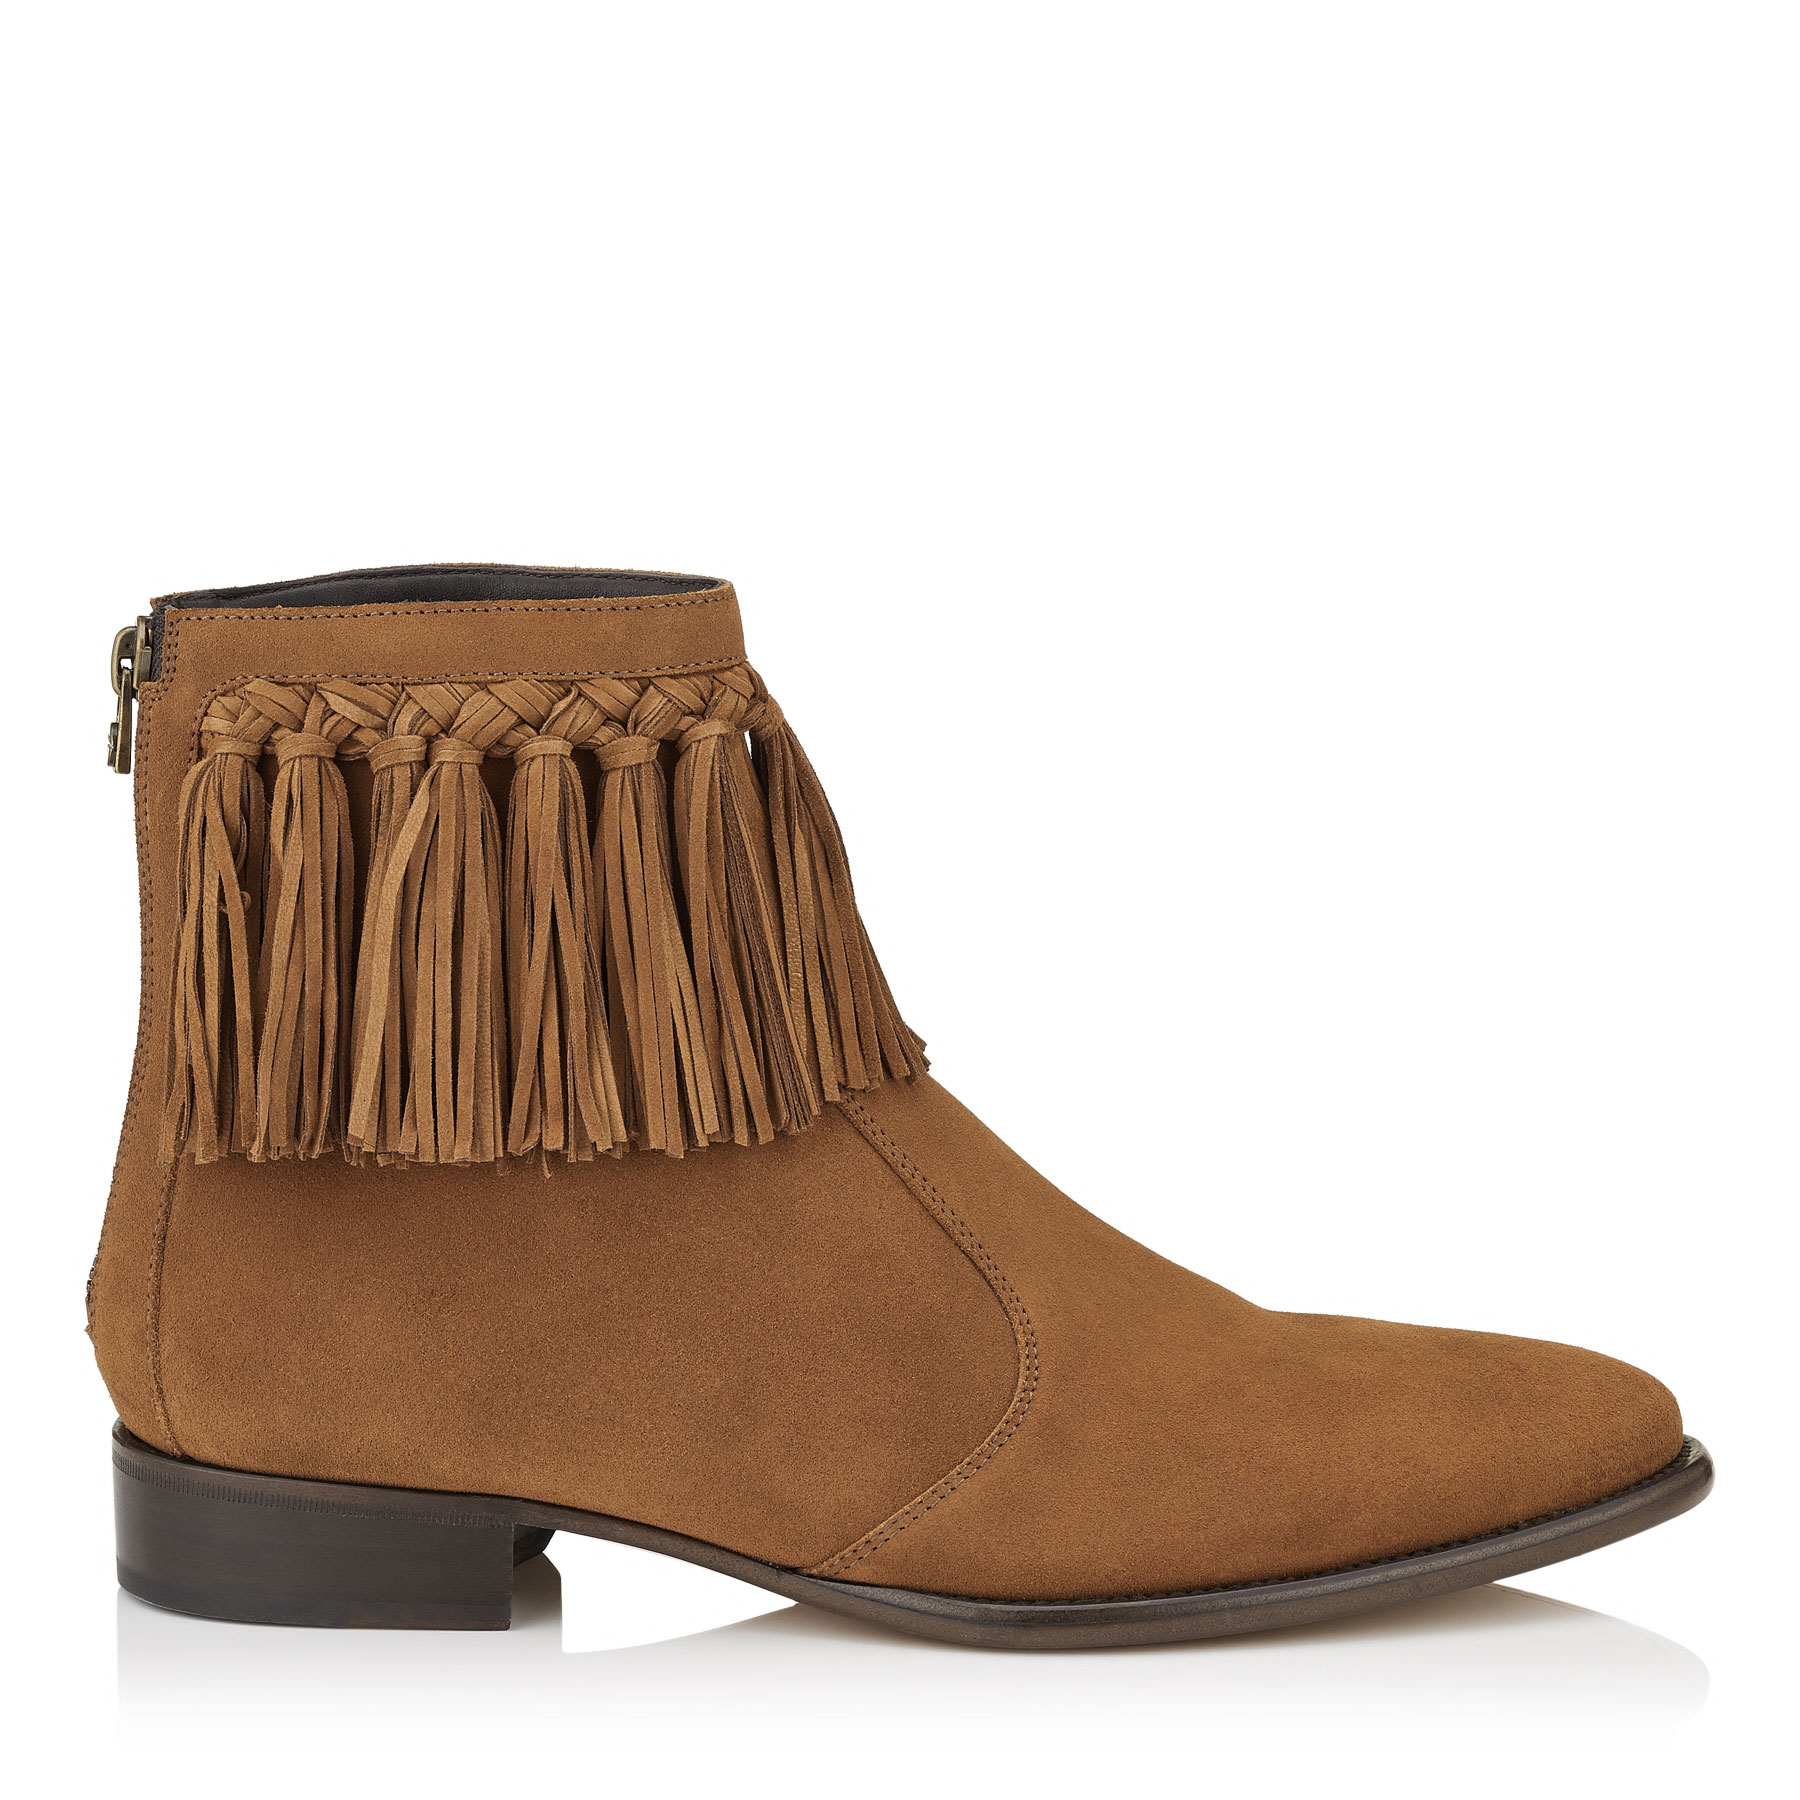 ERIC Dark Tan Dry Suede Boots